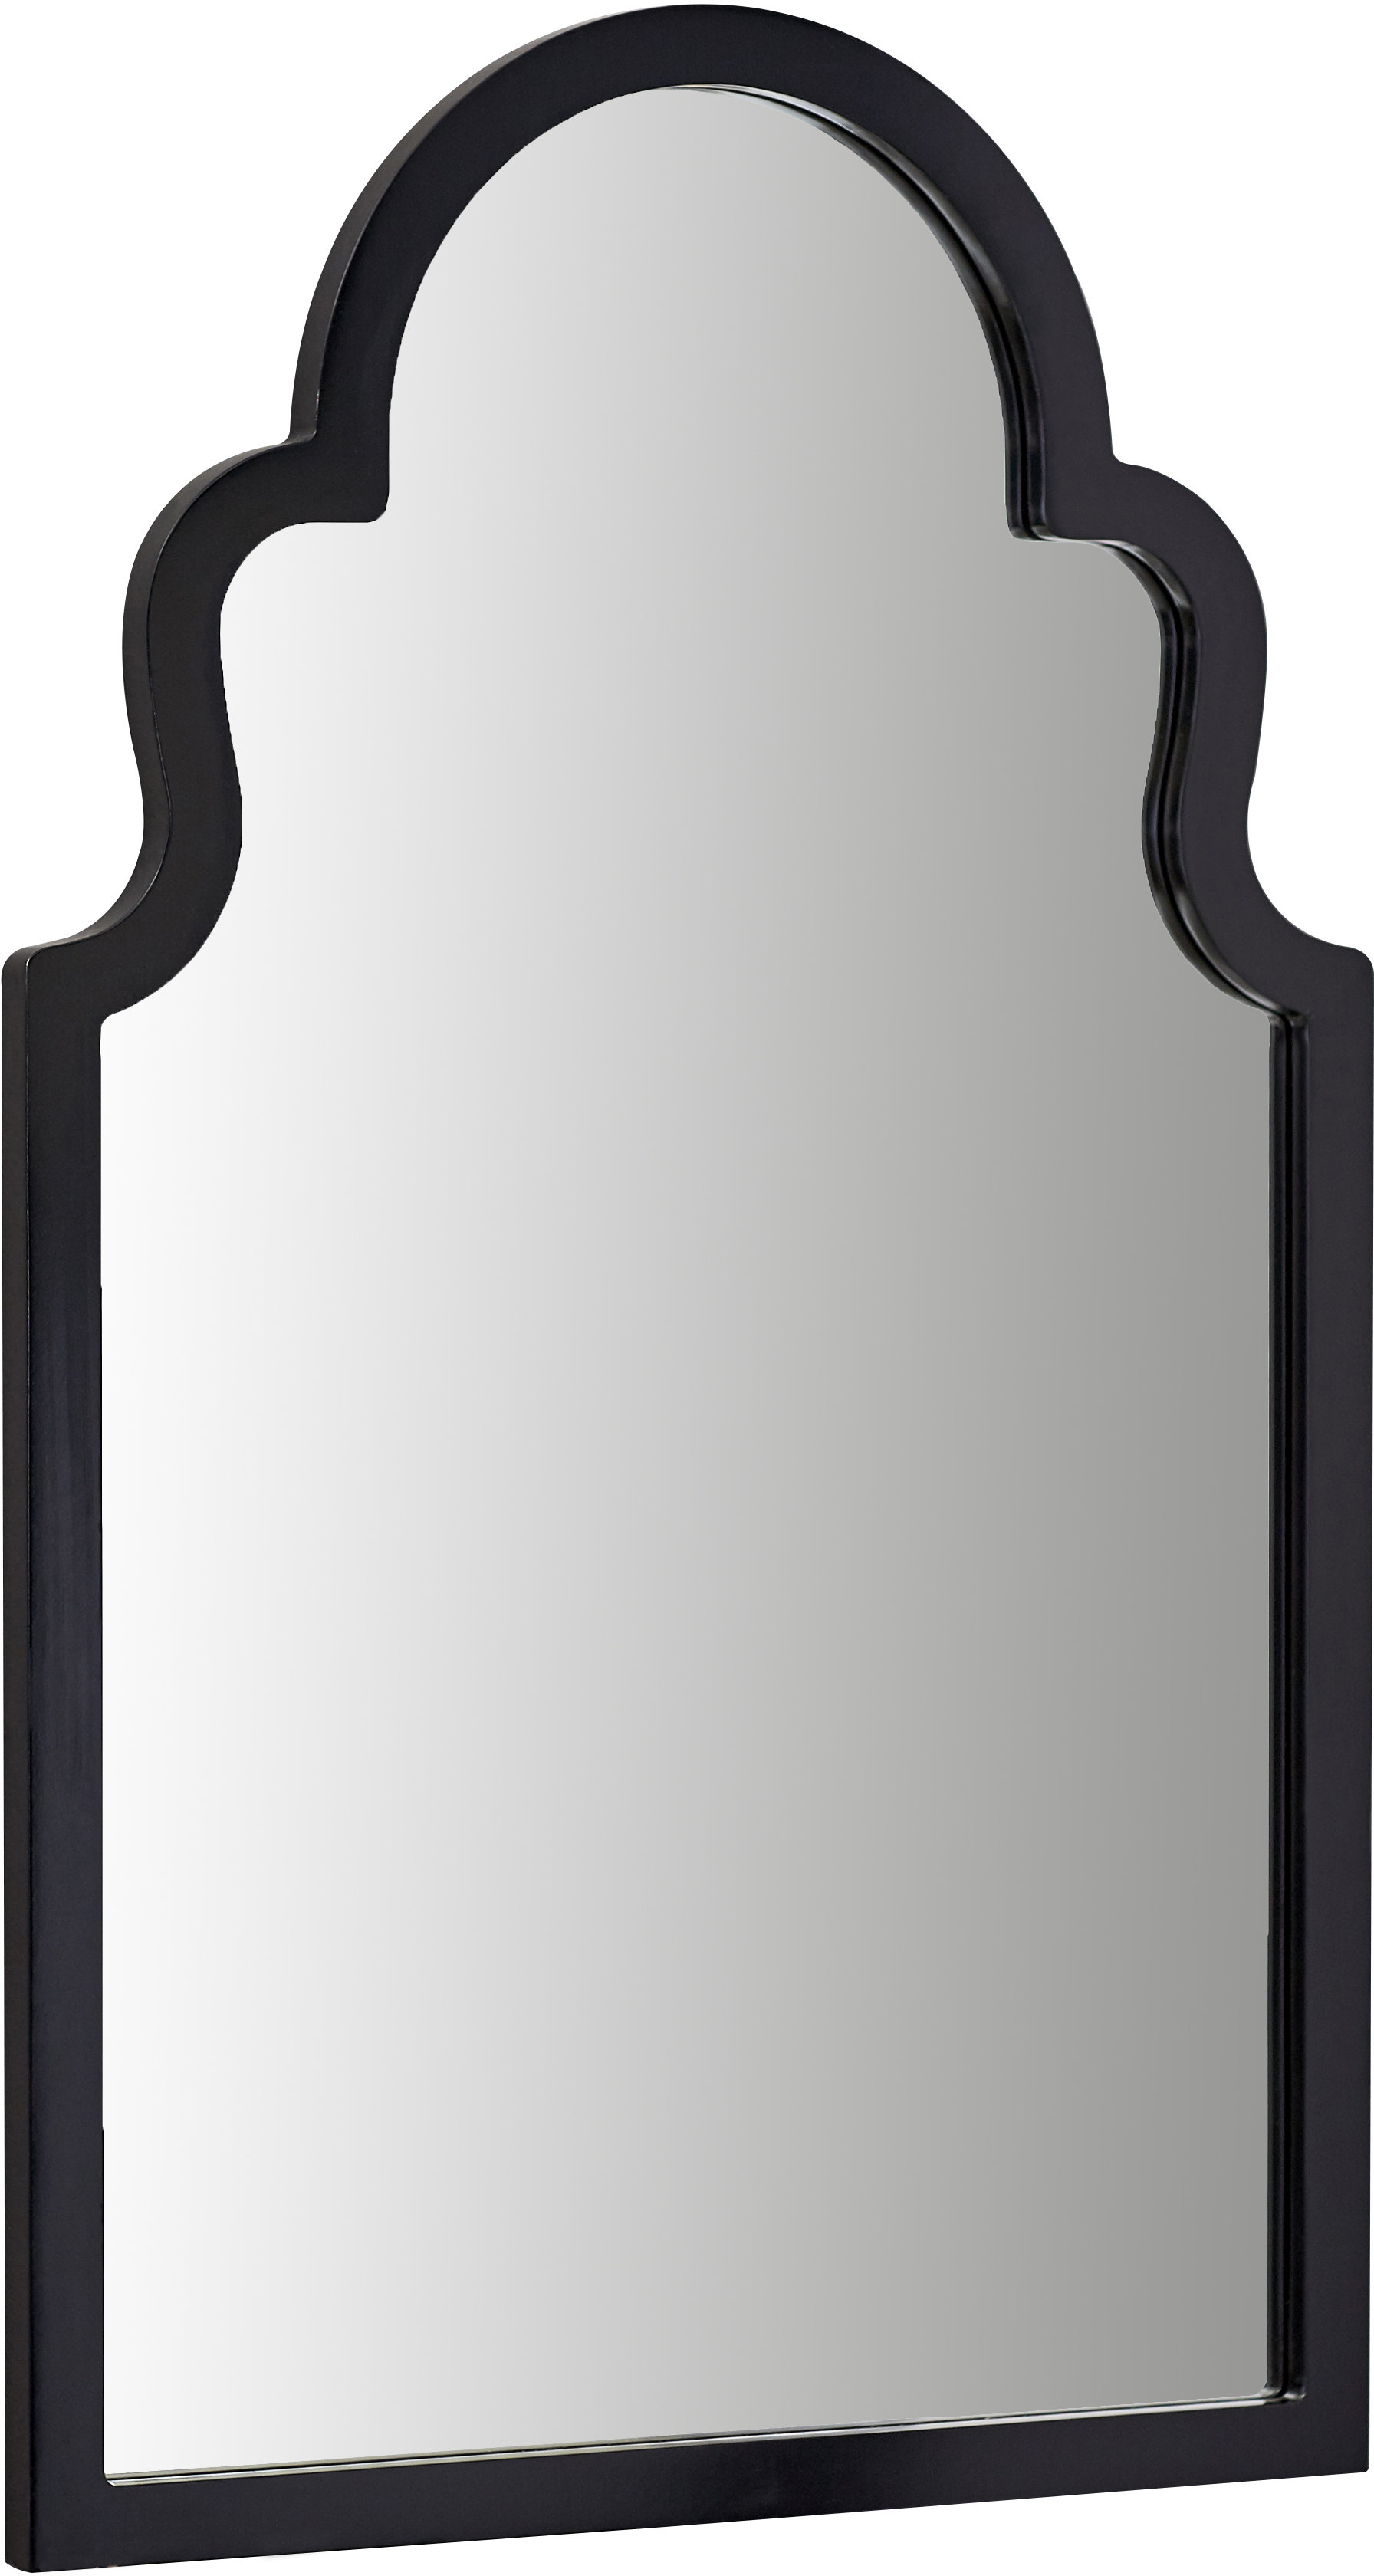 Willa Arlo Interiors Fifi Contemporary Arch Wall Mirror With Regard To Fashionable Dariel Tall Arched Scalloped Wall Mirrors (View 20 of 20)